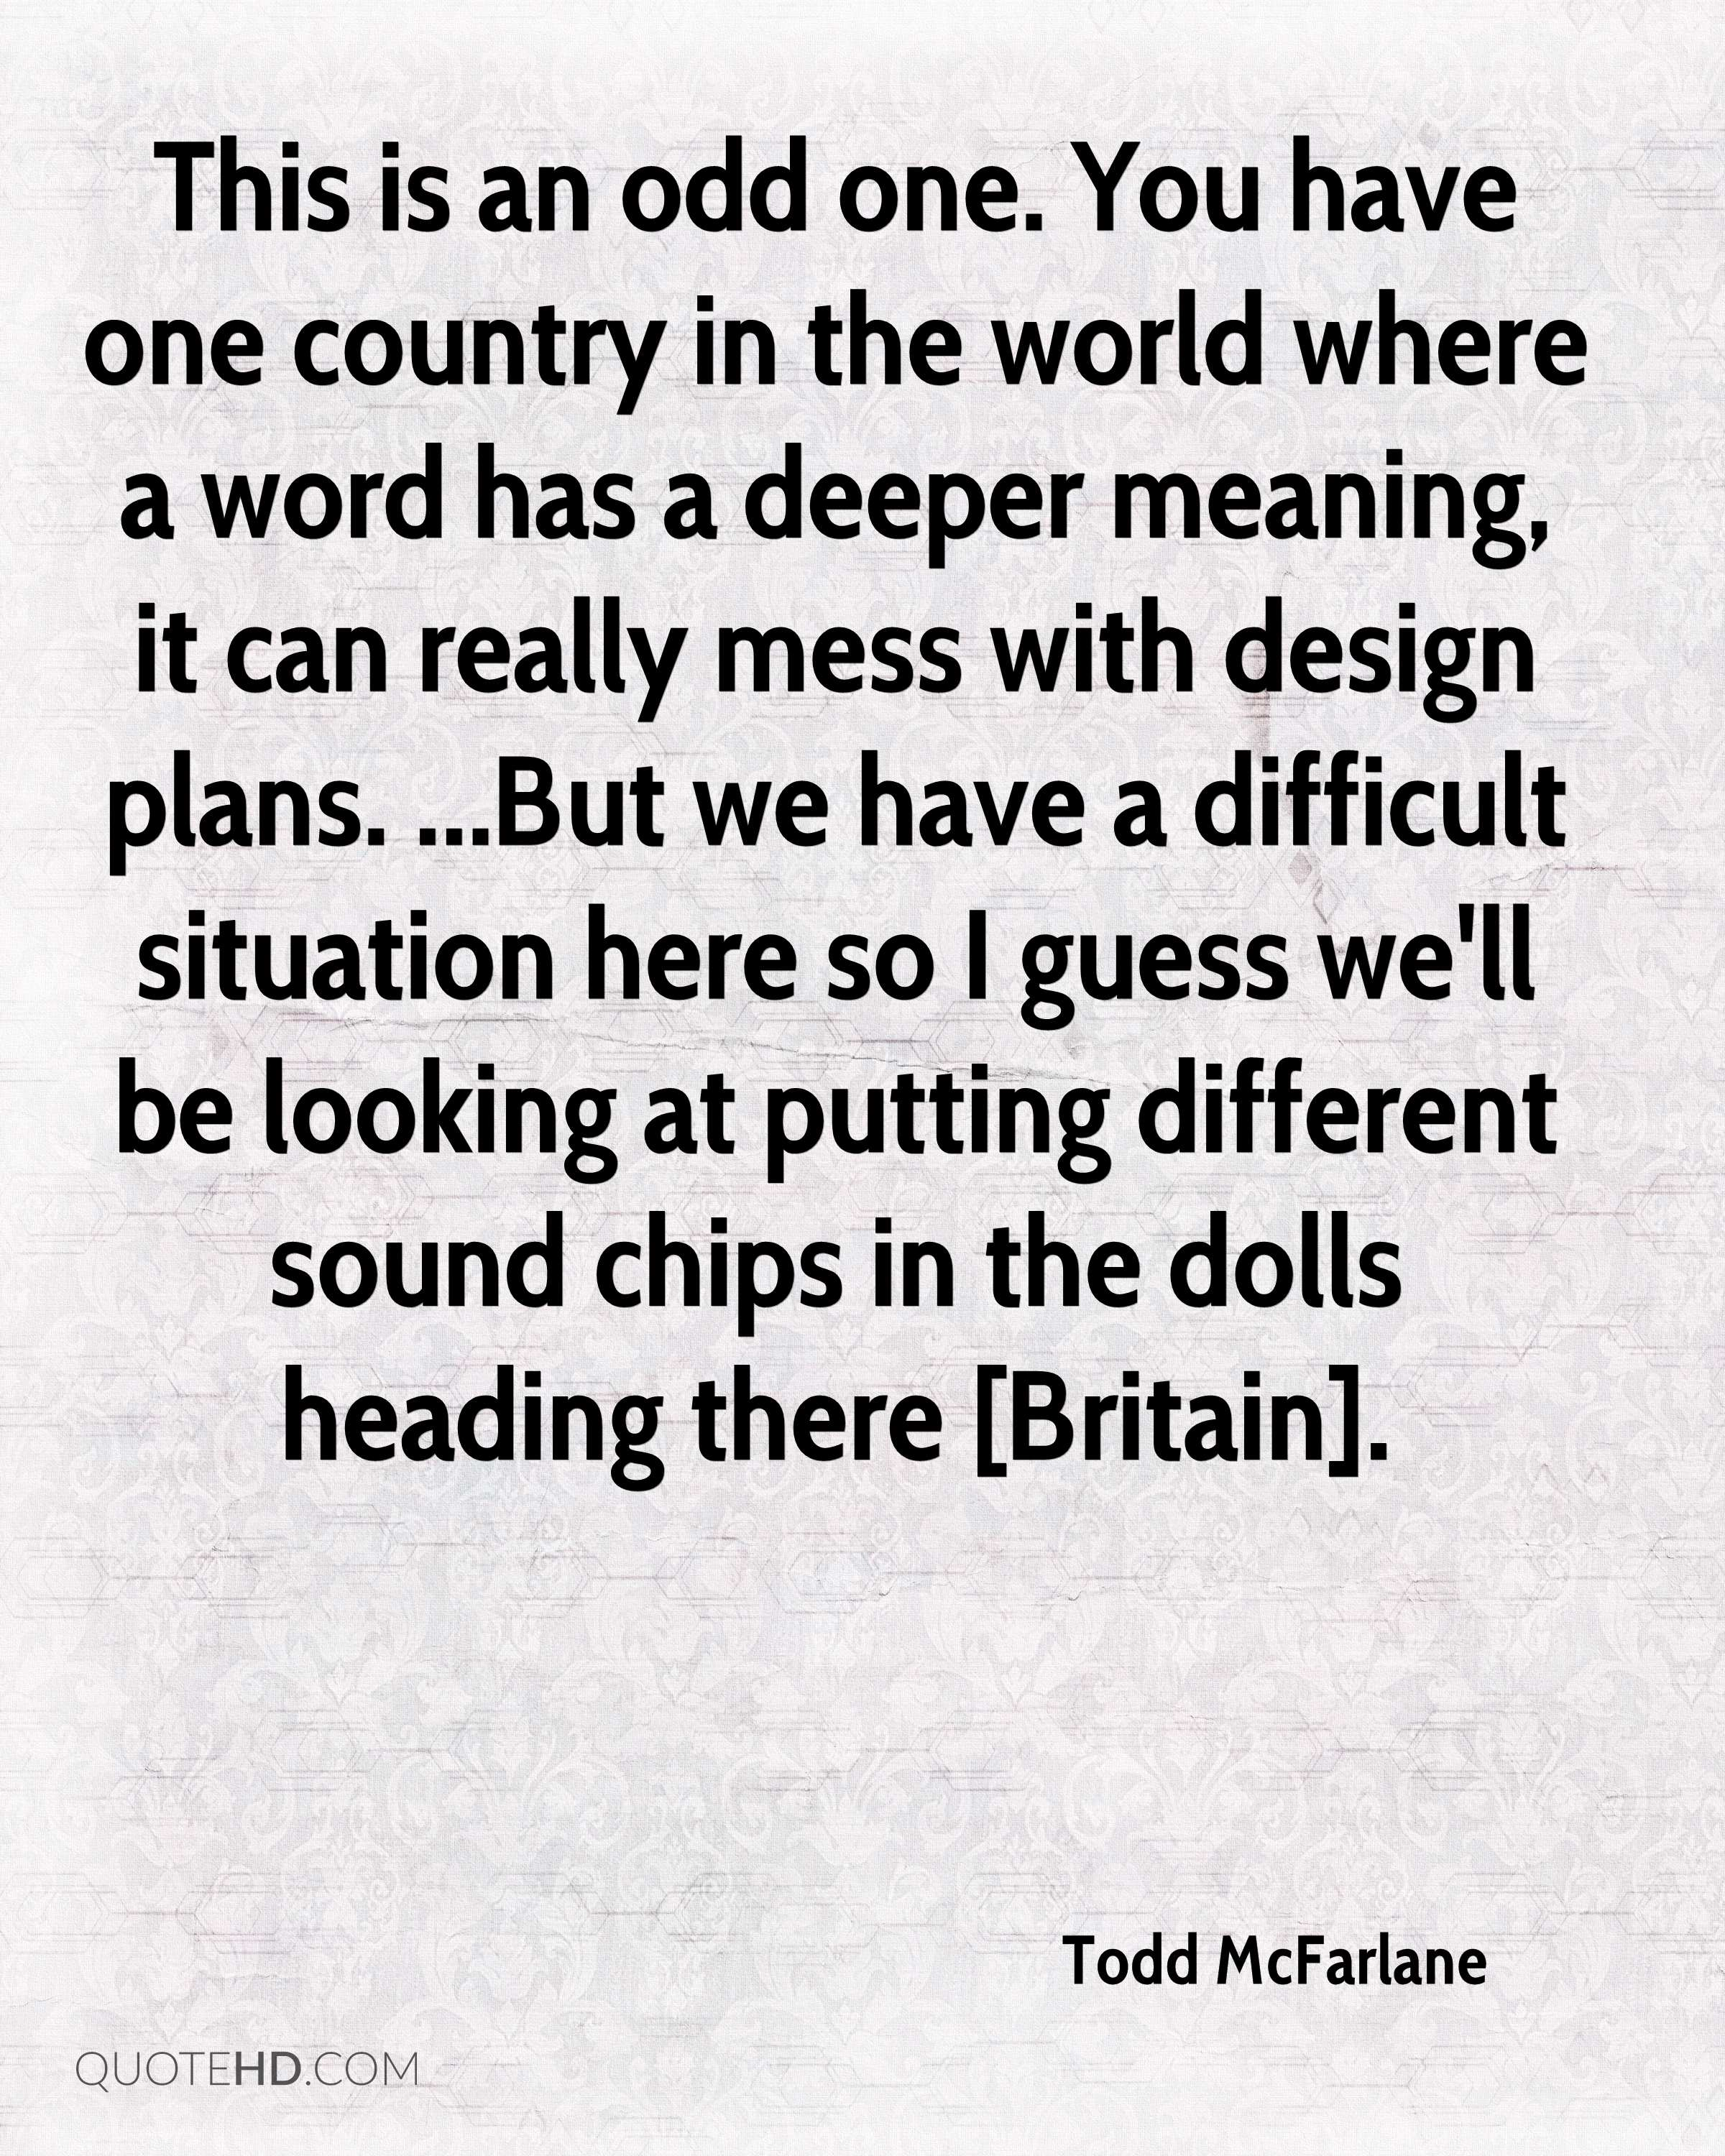 This is an odd one. You have one country in the world where a word has a deeper meaning, it can really mess with design plans. ...But we have a difficult situation here so I guess we'll be looking at putting different sound chips in the dolls heading there [Britain].